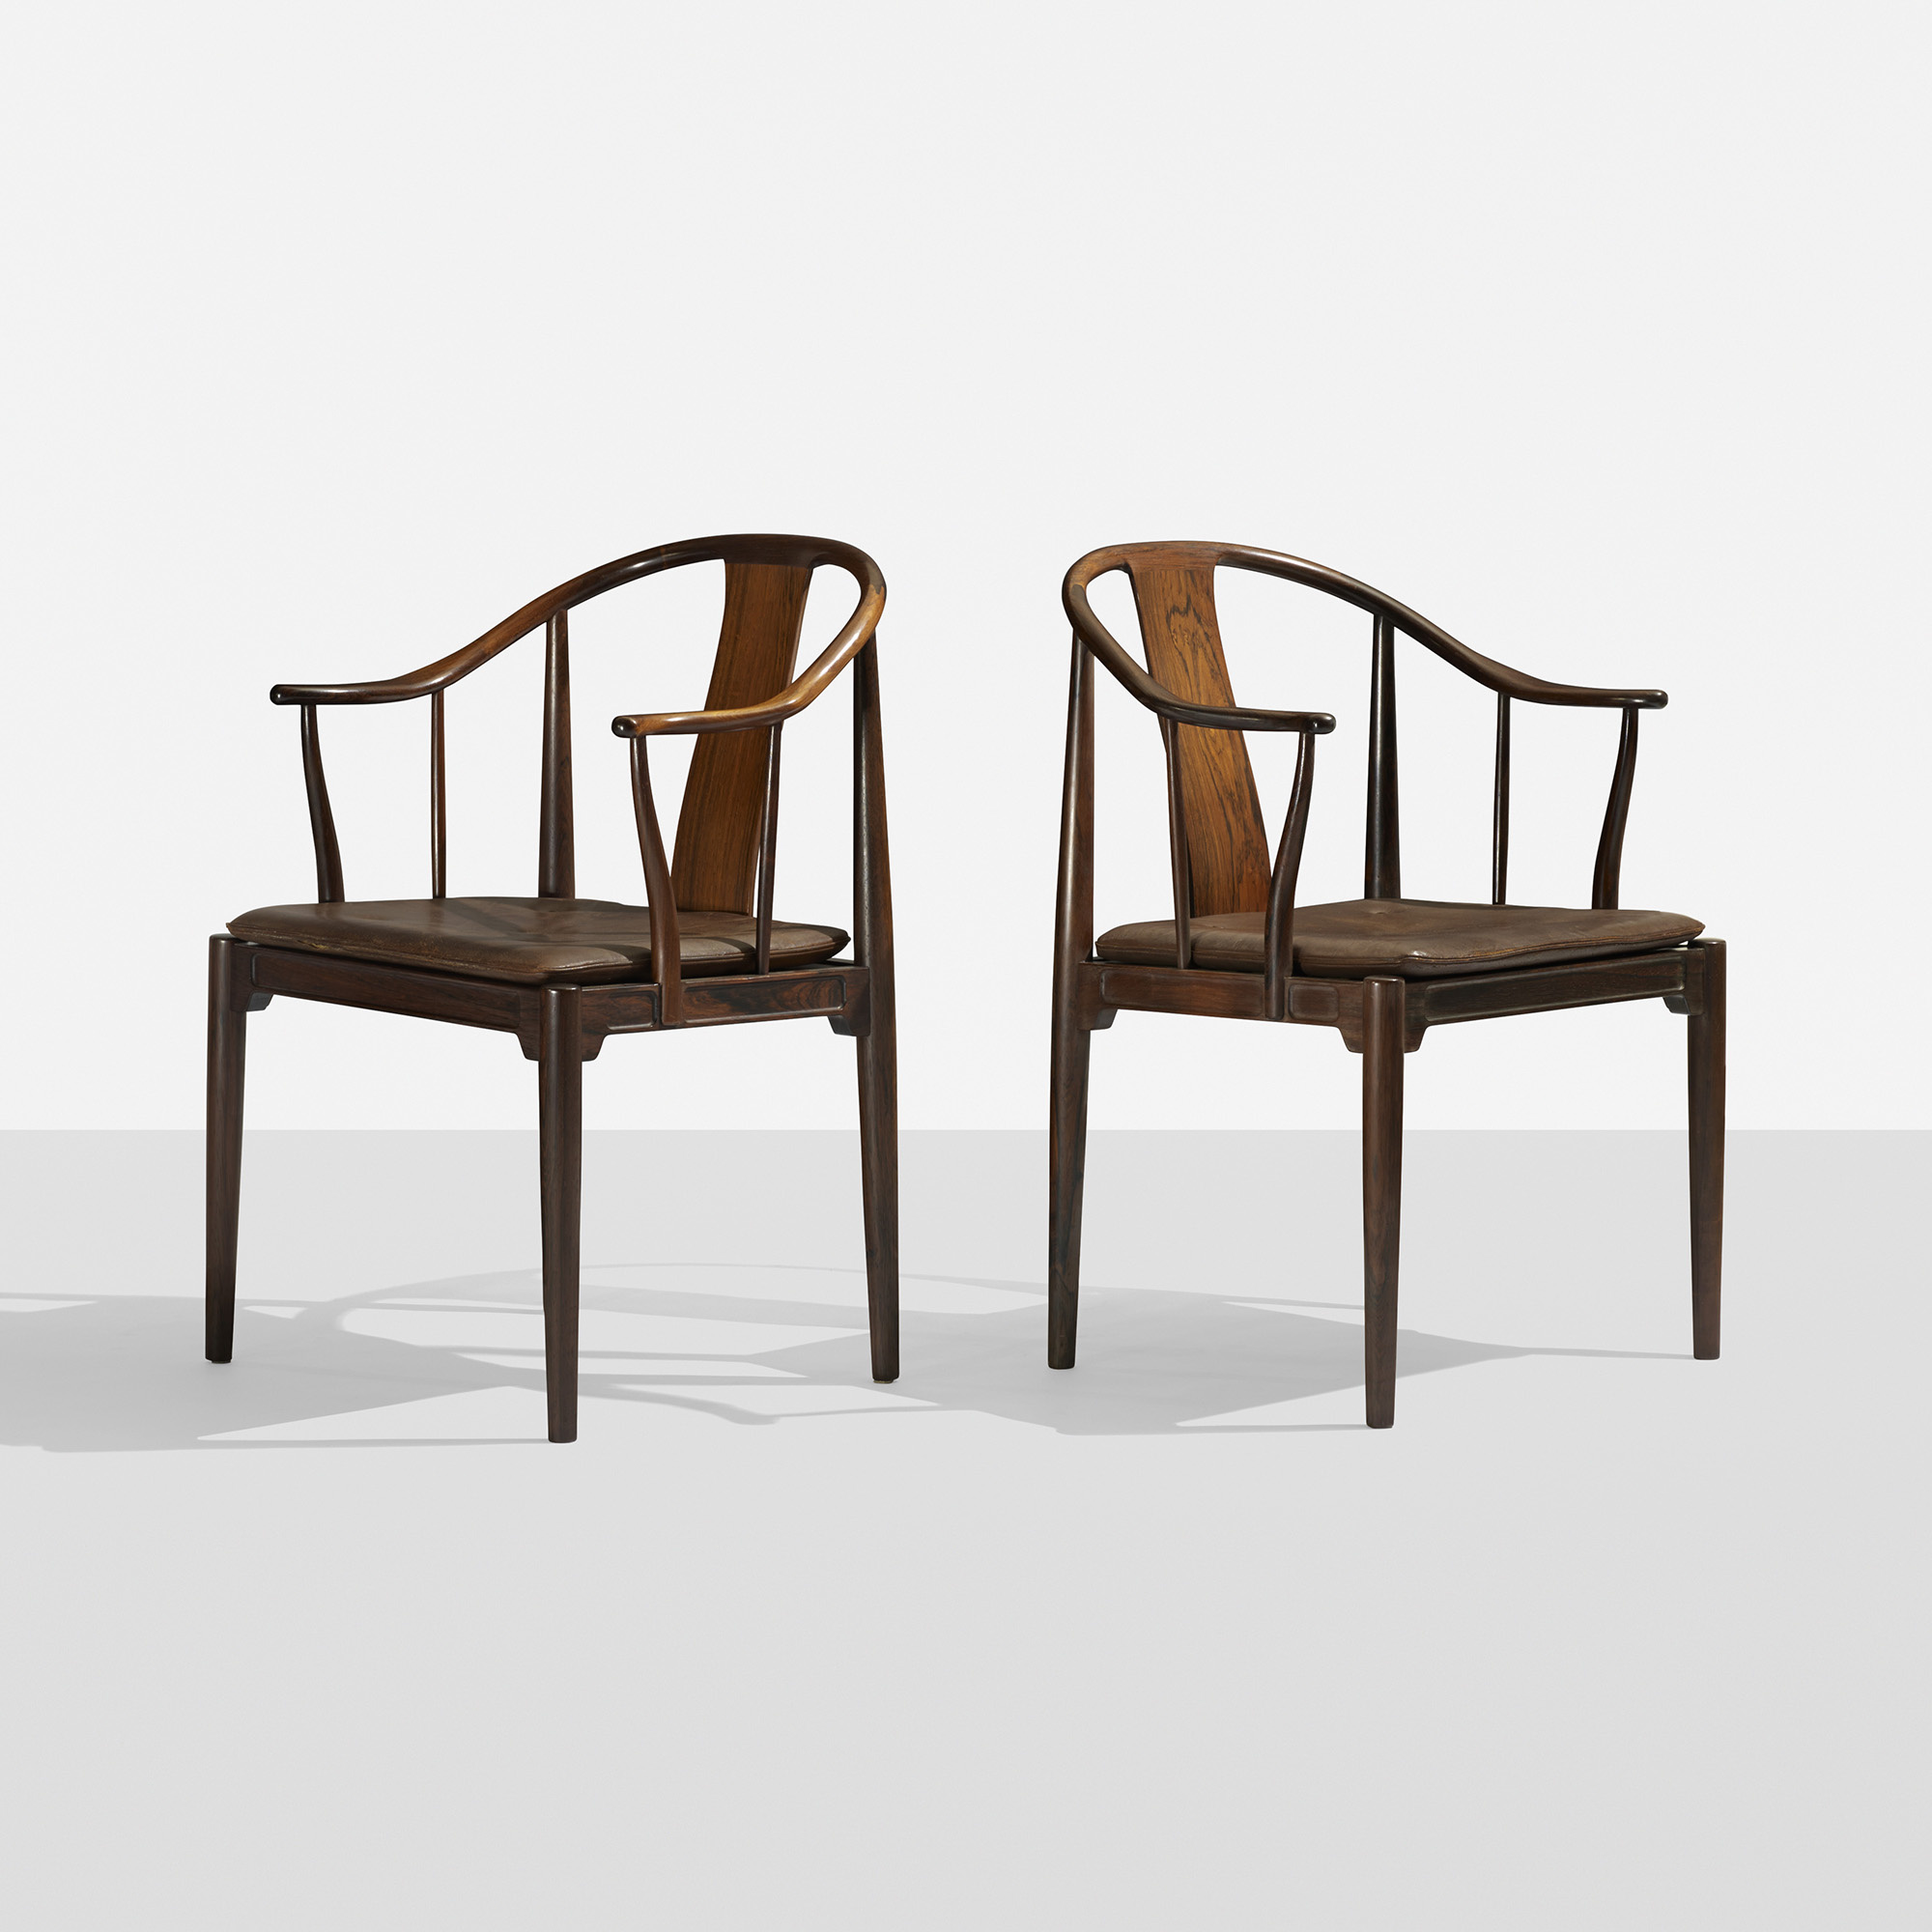 181: Hans J. Wegner / Chinese Chairs, Pair (1 Of 6)